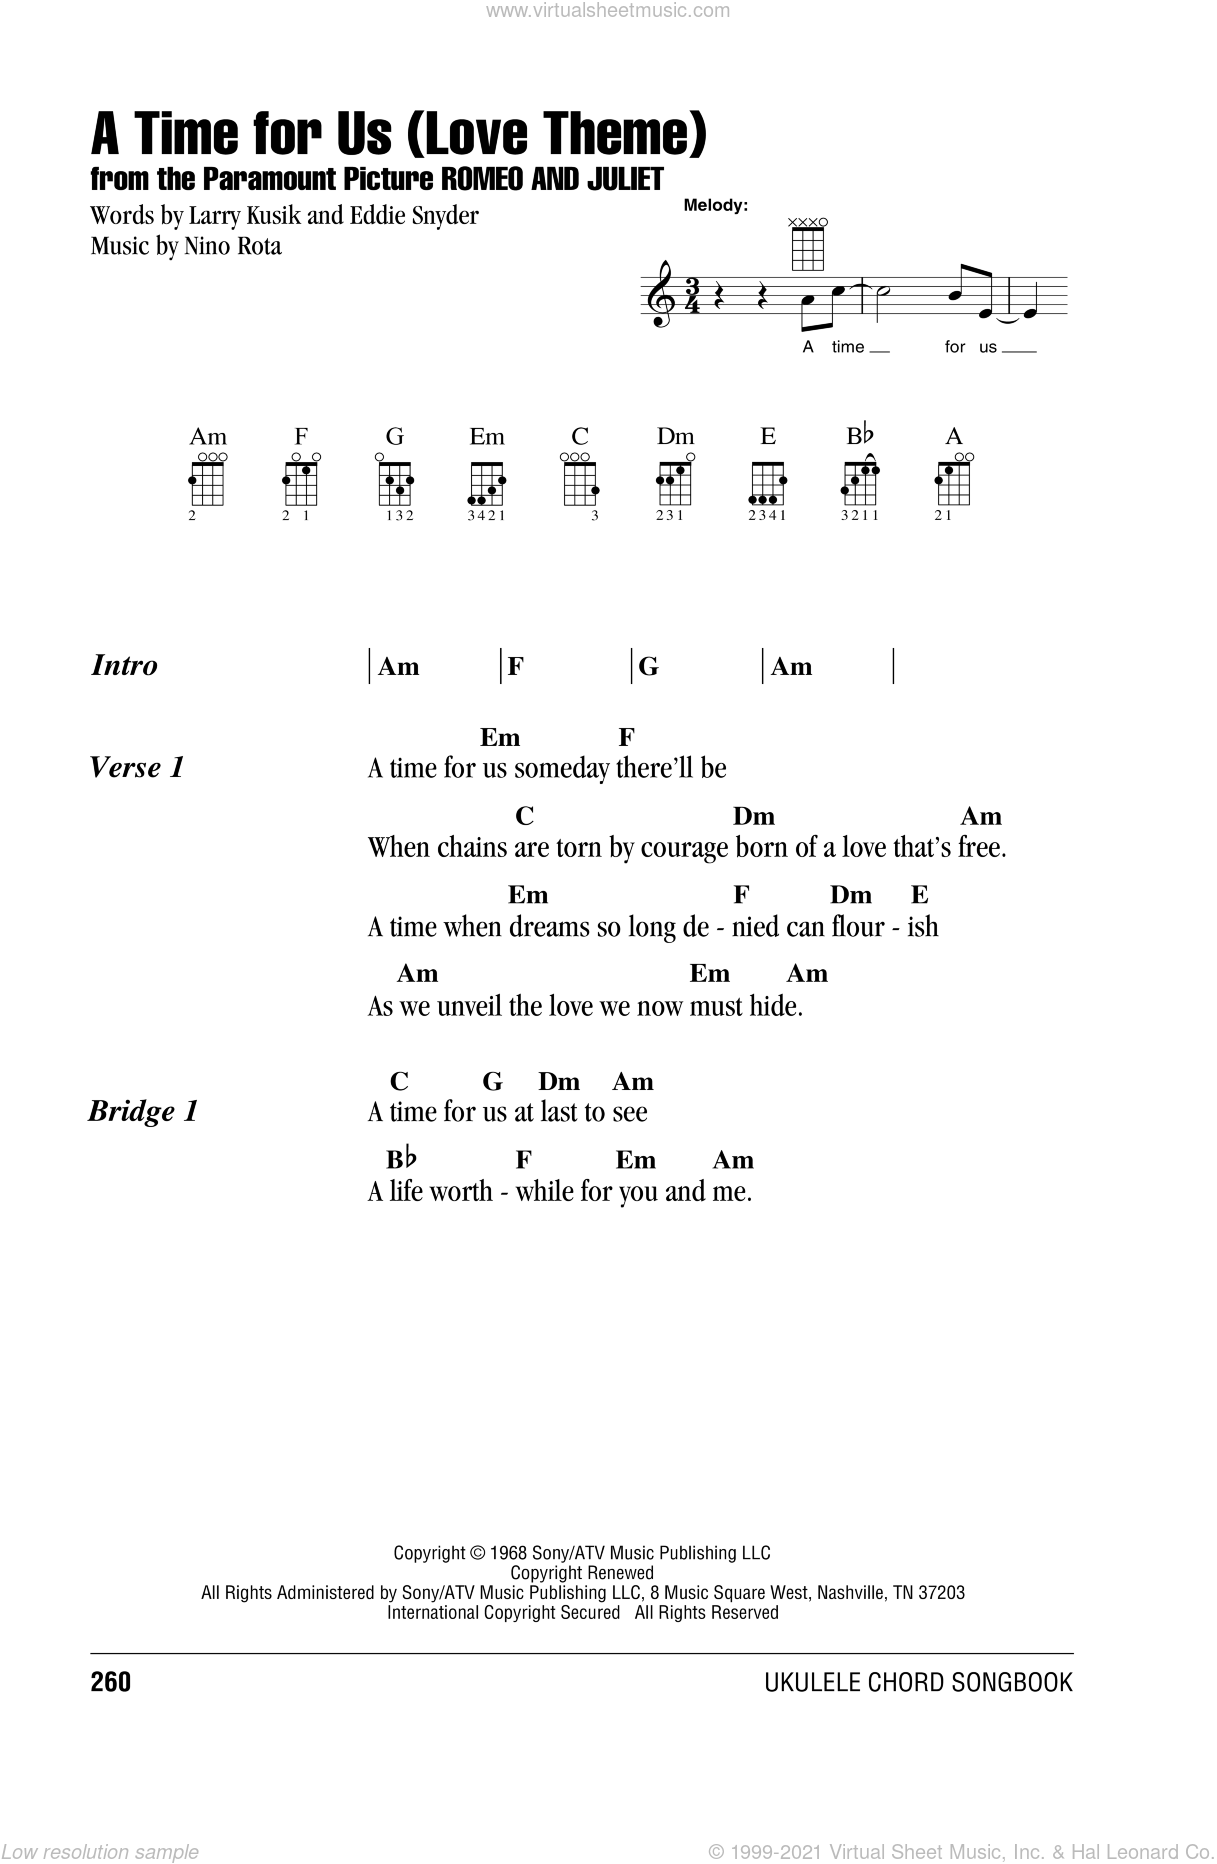 A Time For Us (Love Theme) sheet music for ukulele (chords) by Henry Mancini, Eddie Snyder, Larry Kusik and Nino Rota, intermediate skill level